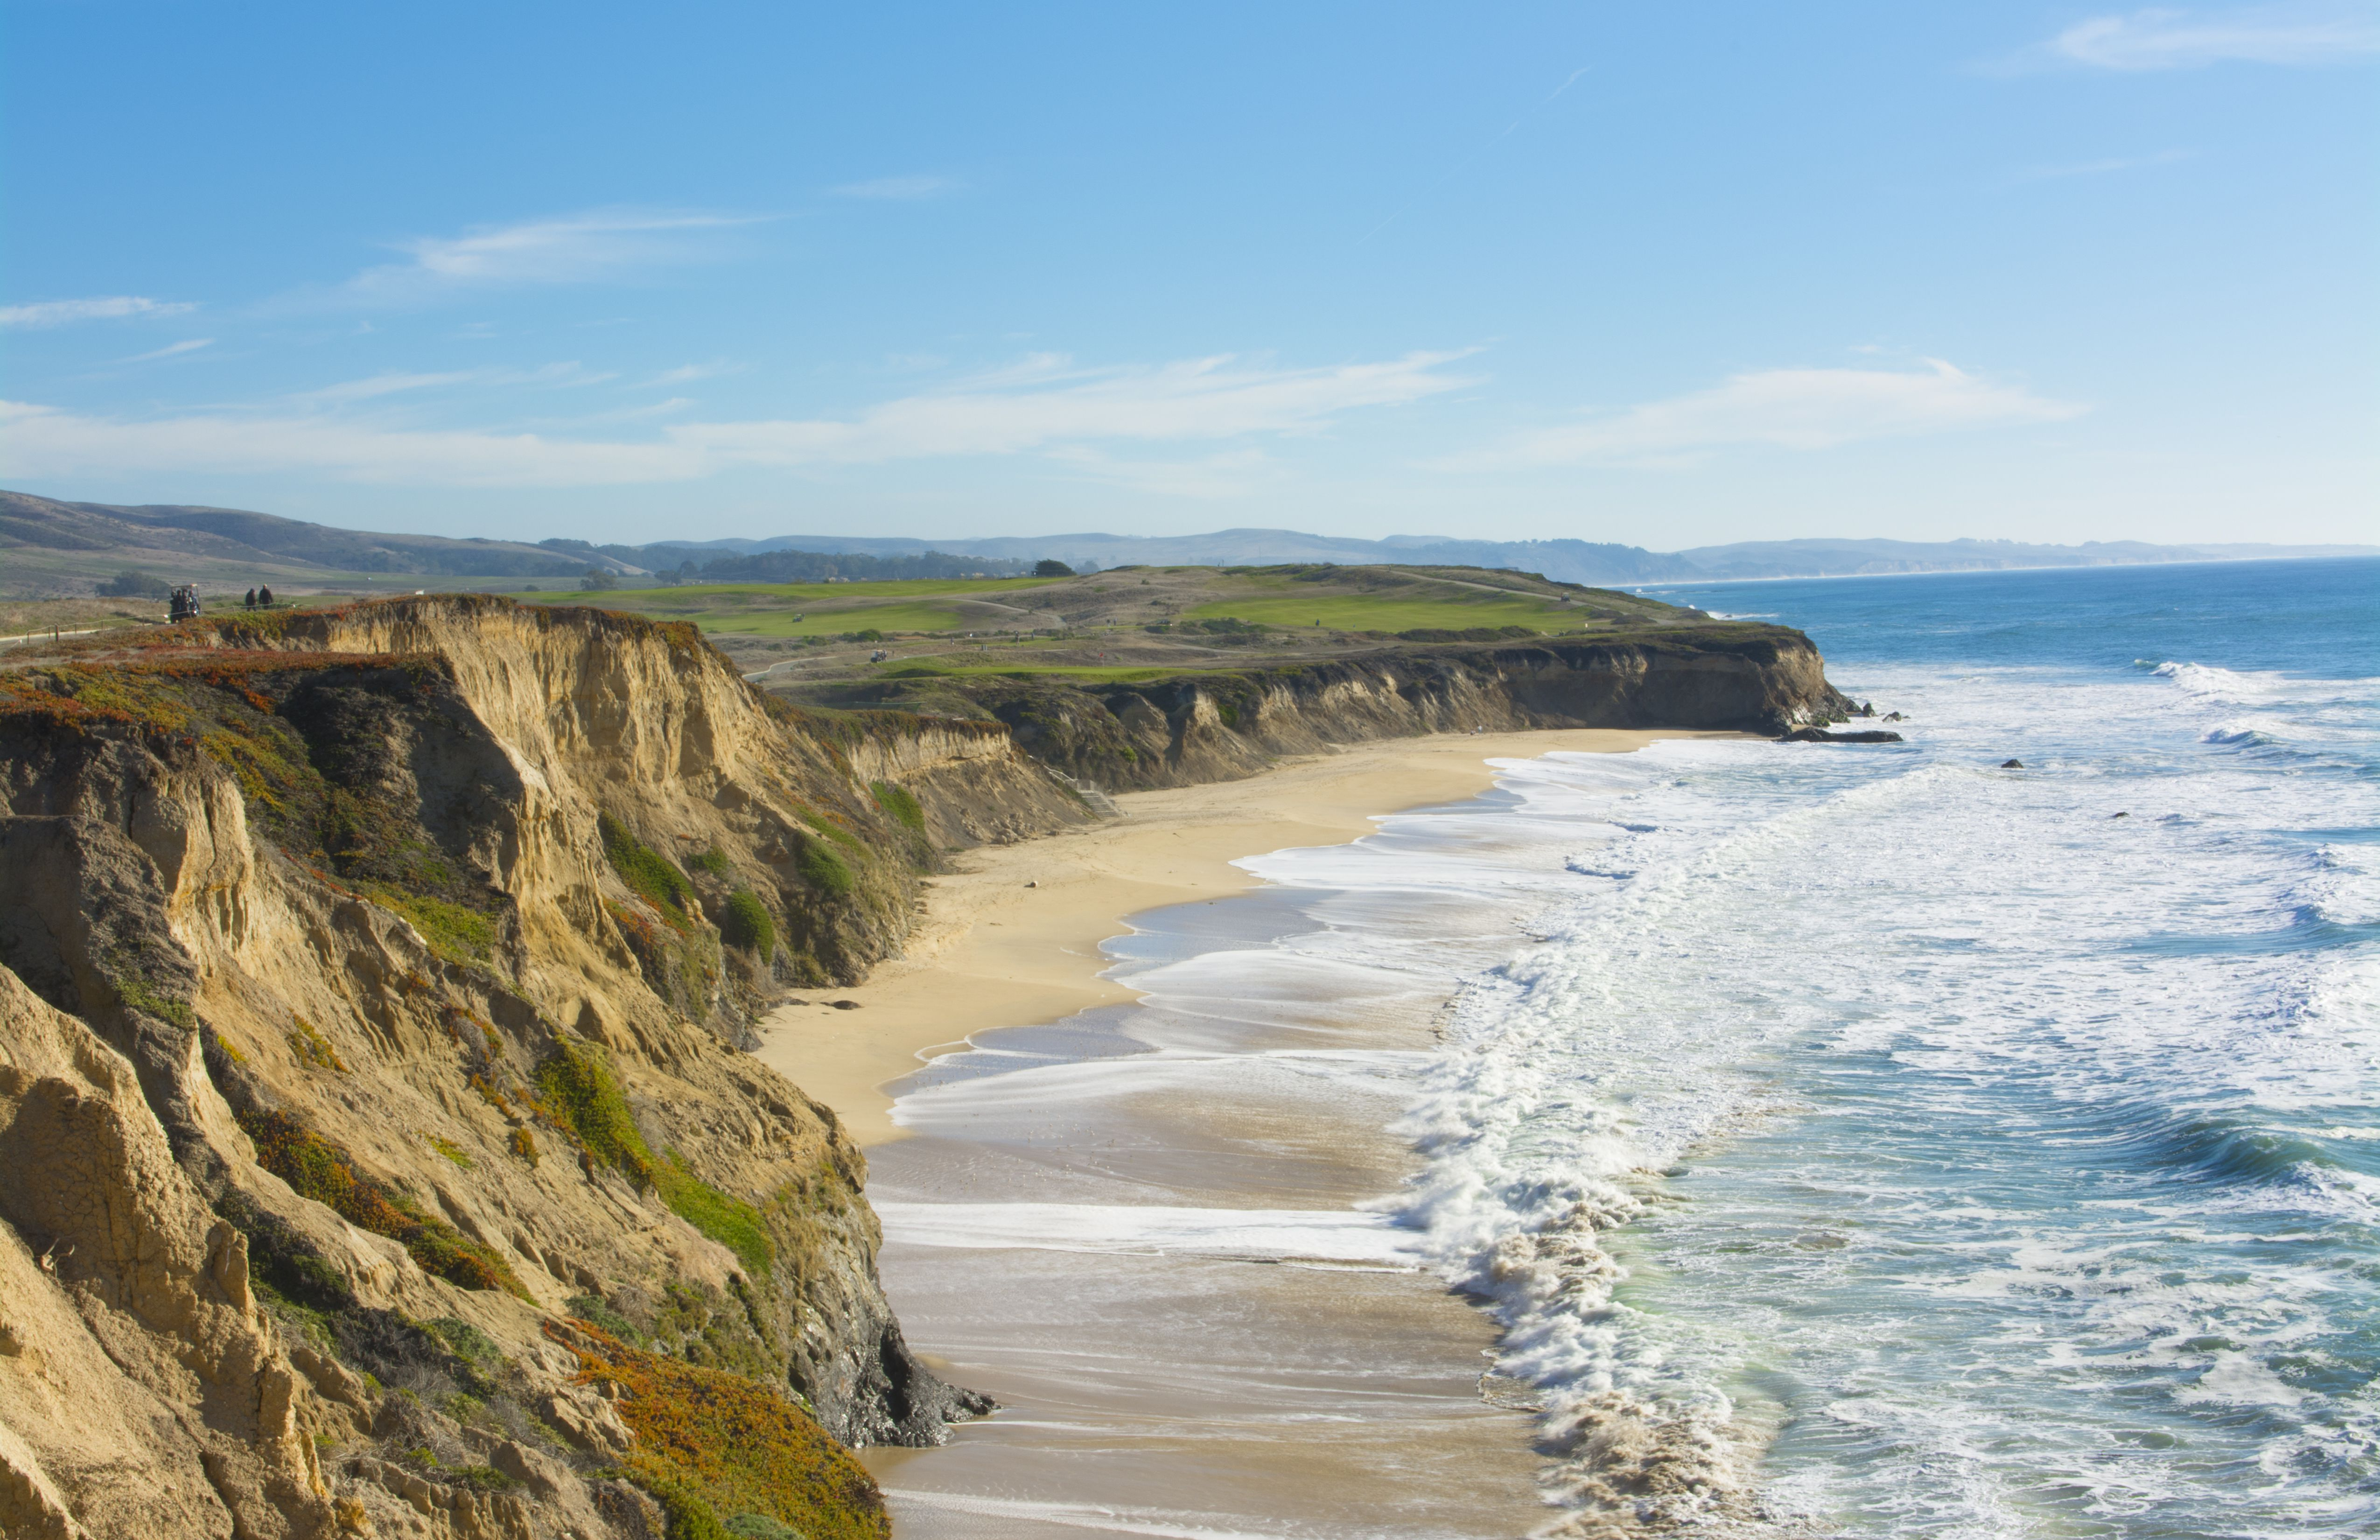 11 Best Family Beach Vacations in California